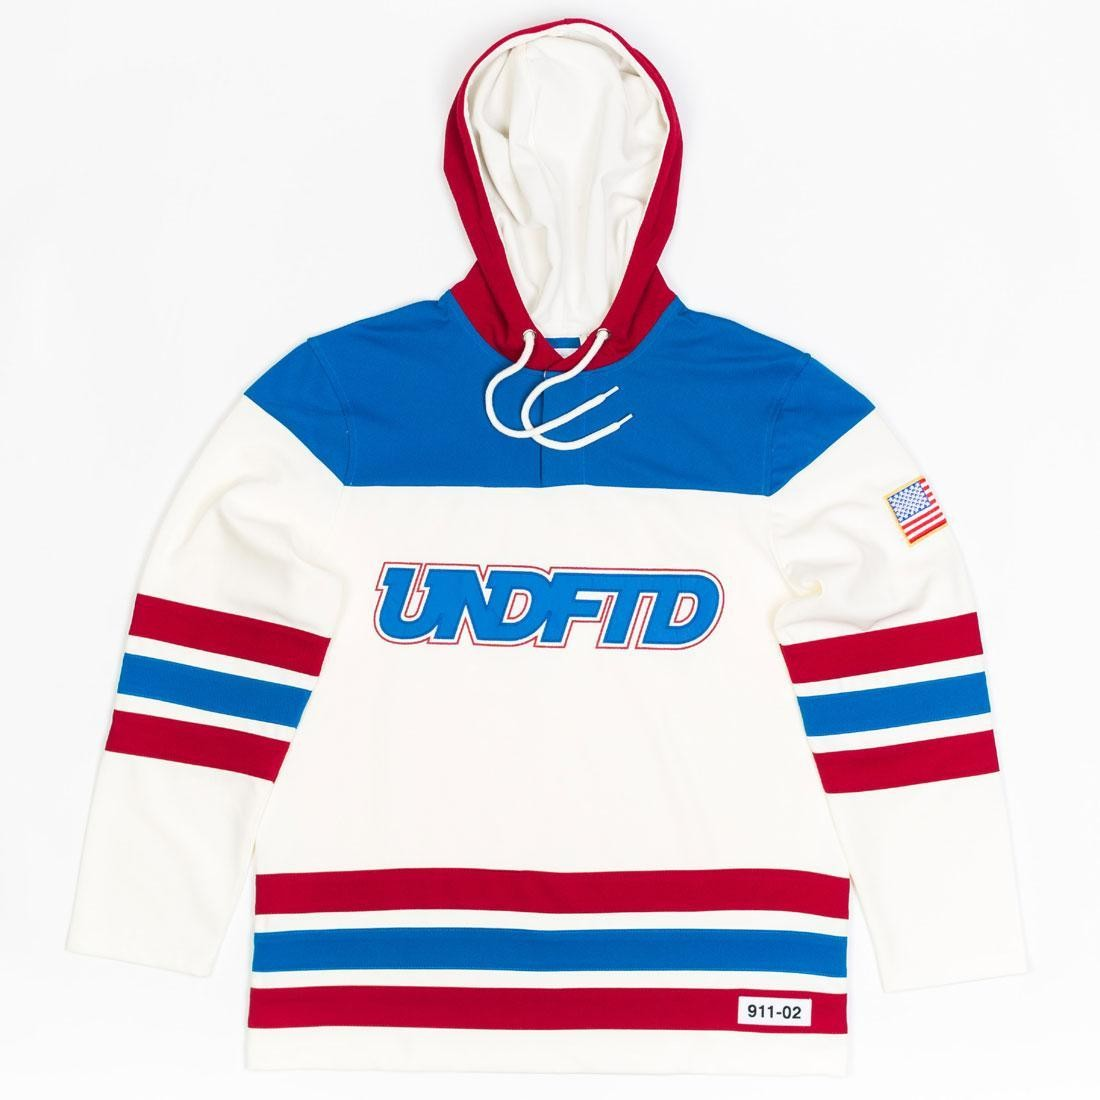 【海外限定】ジャージ UNDEFEATED メンズファッション カットソー【 UNDEFEATED JERSEY MEN HOCKEY MEN JERSEY WHITE OFF】, Eternal:82ef4c39 --- sunward.msk.ru